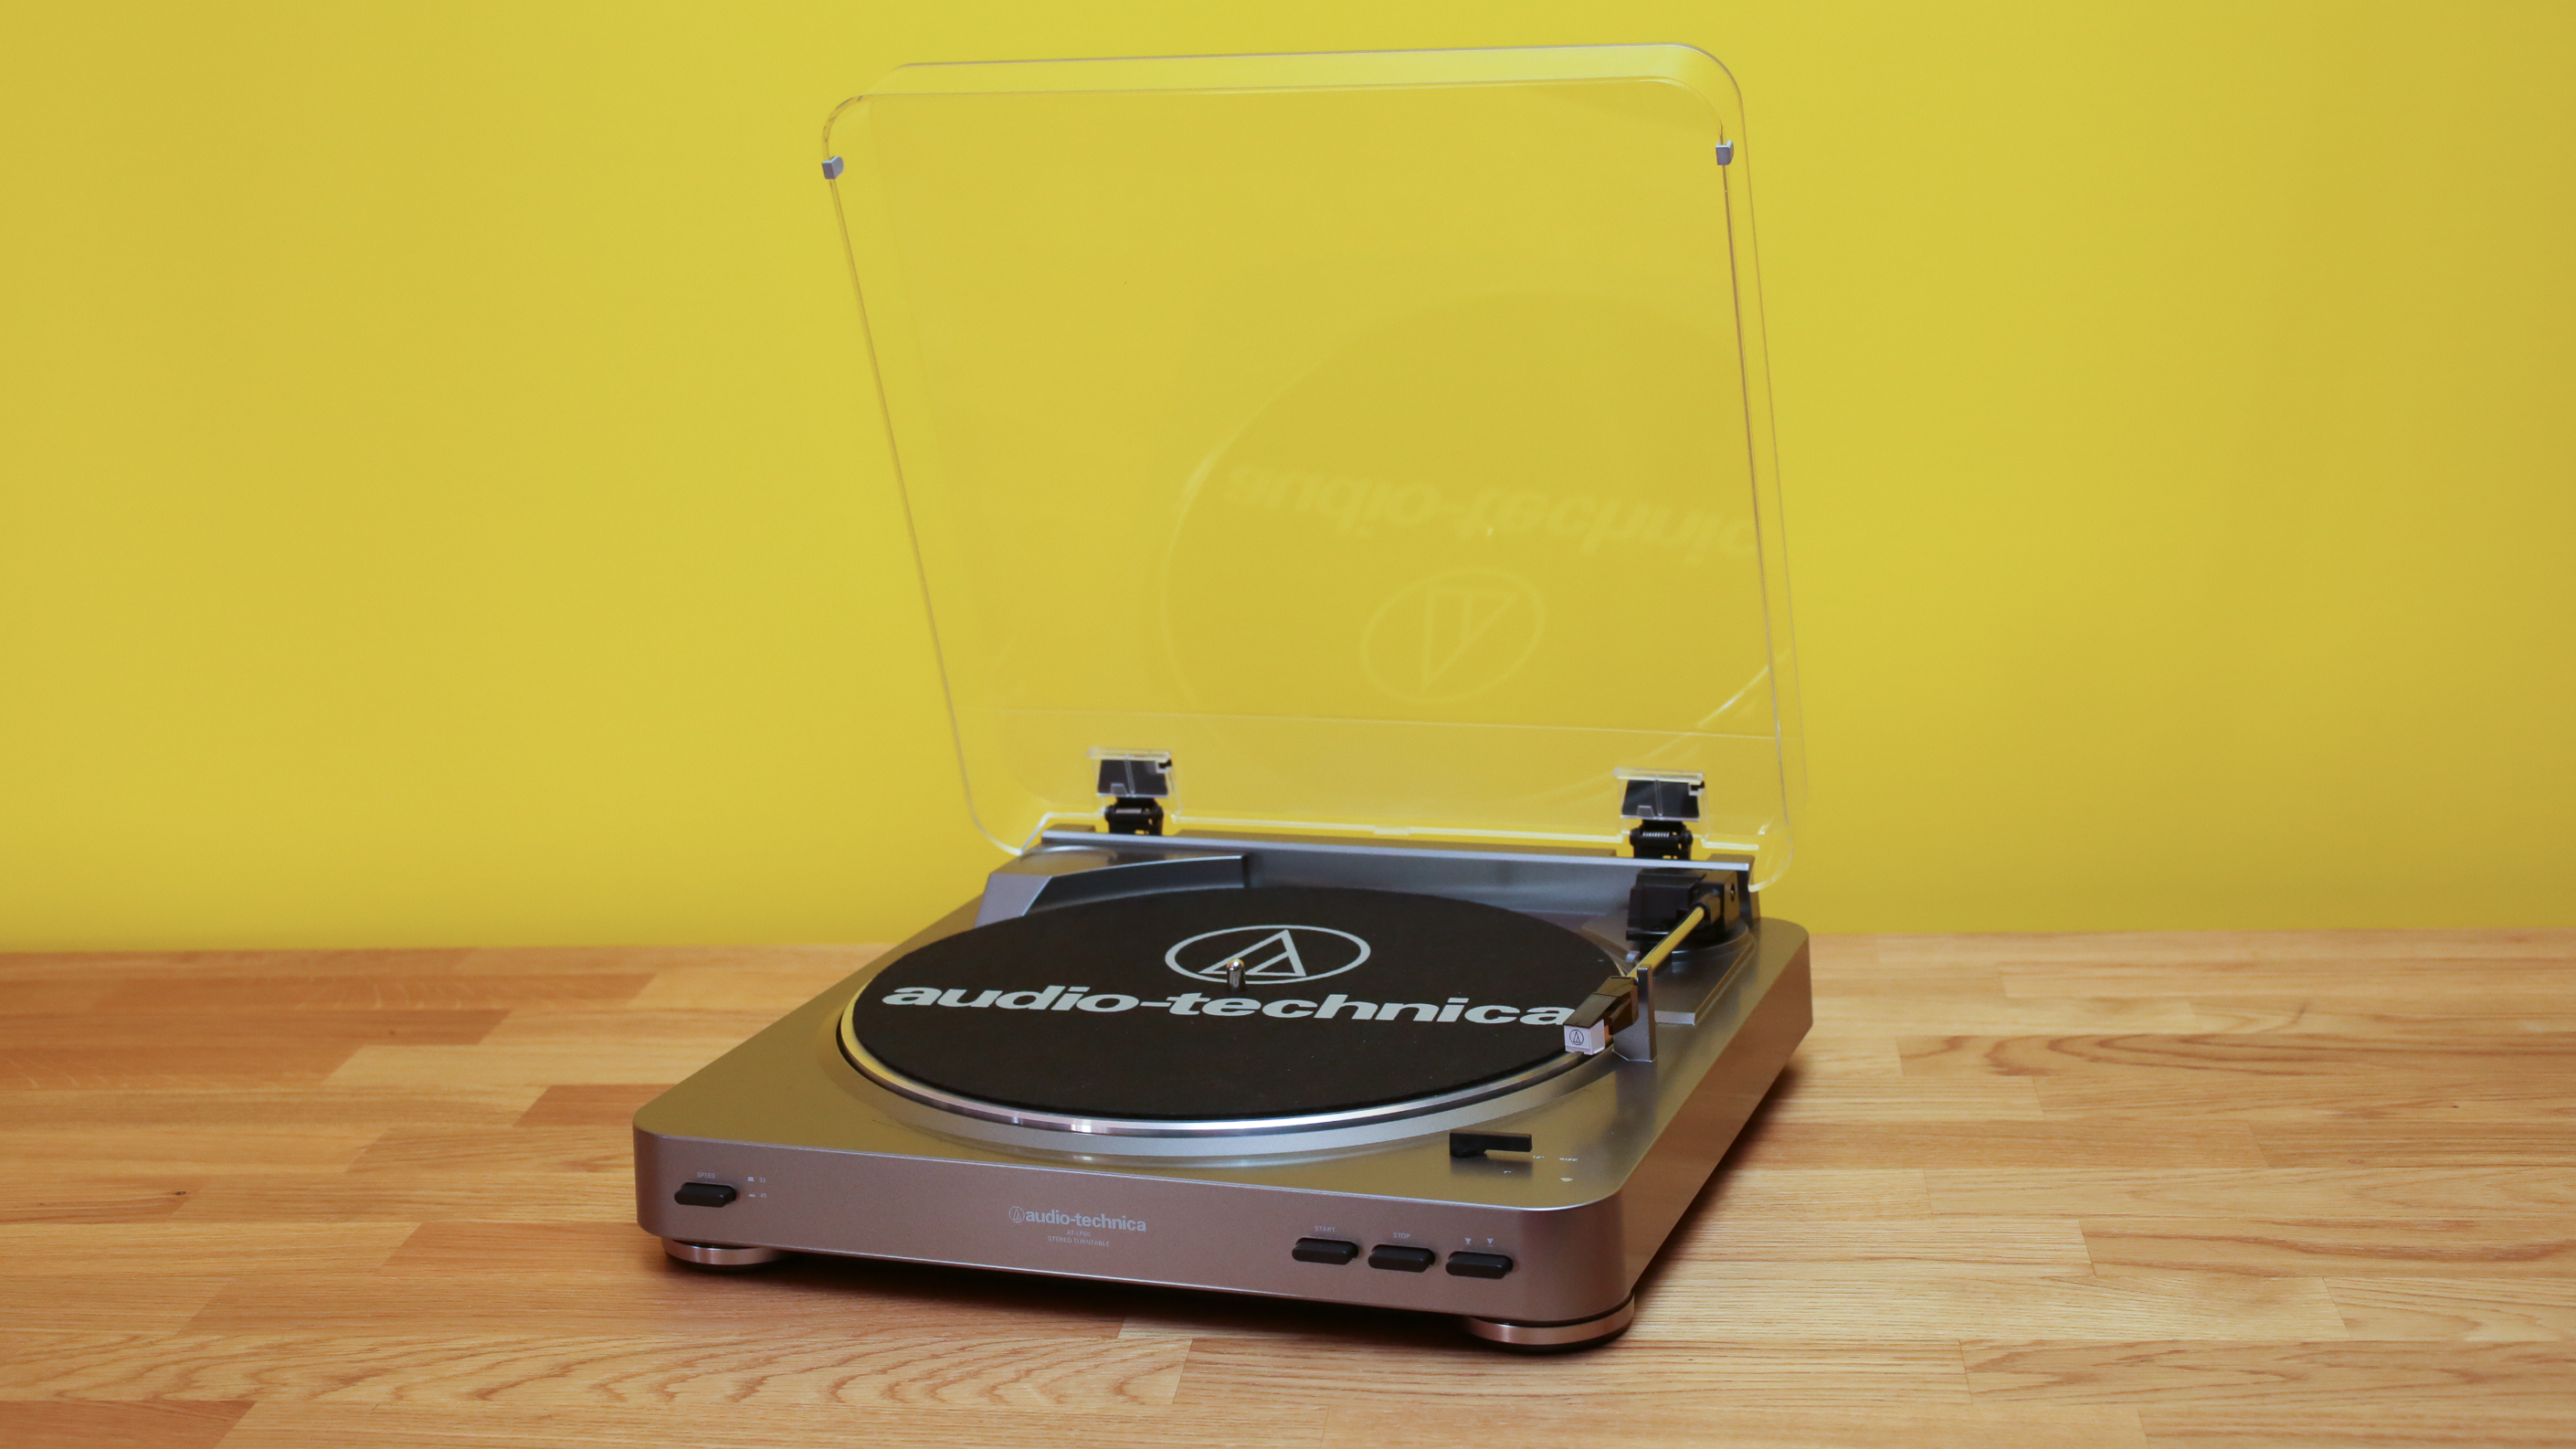 A beginner's turntable for the vinyl revival